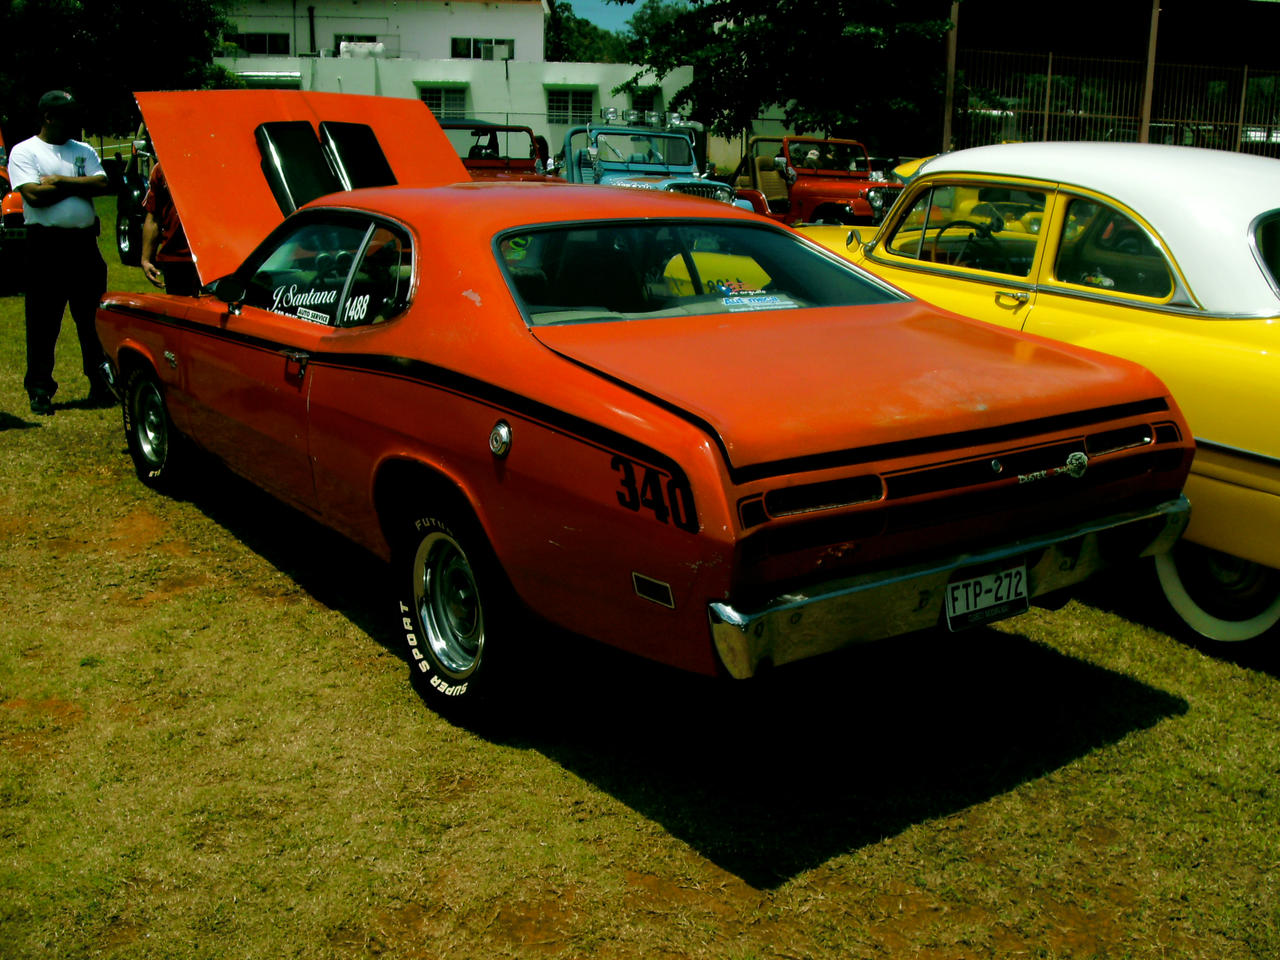 ... 1970 Plymouth Duster by Mister-Lou